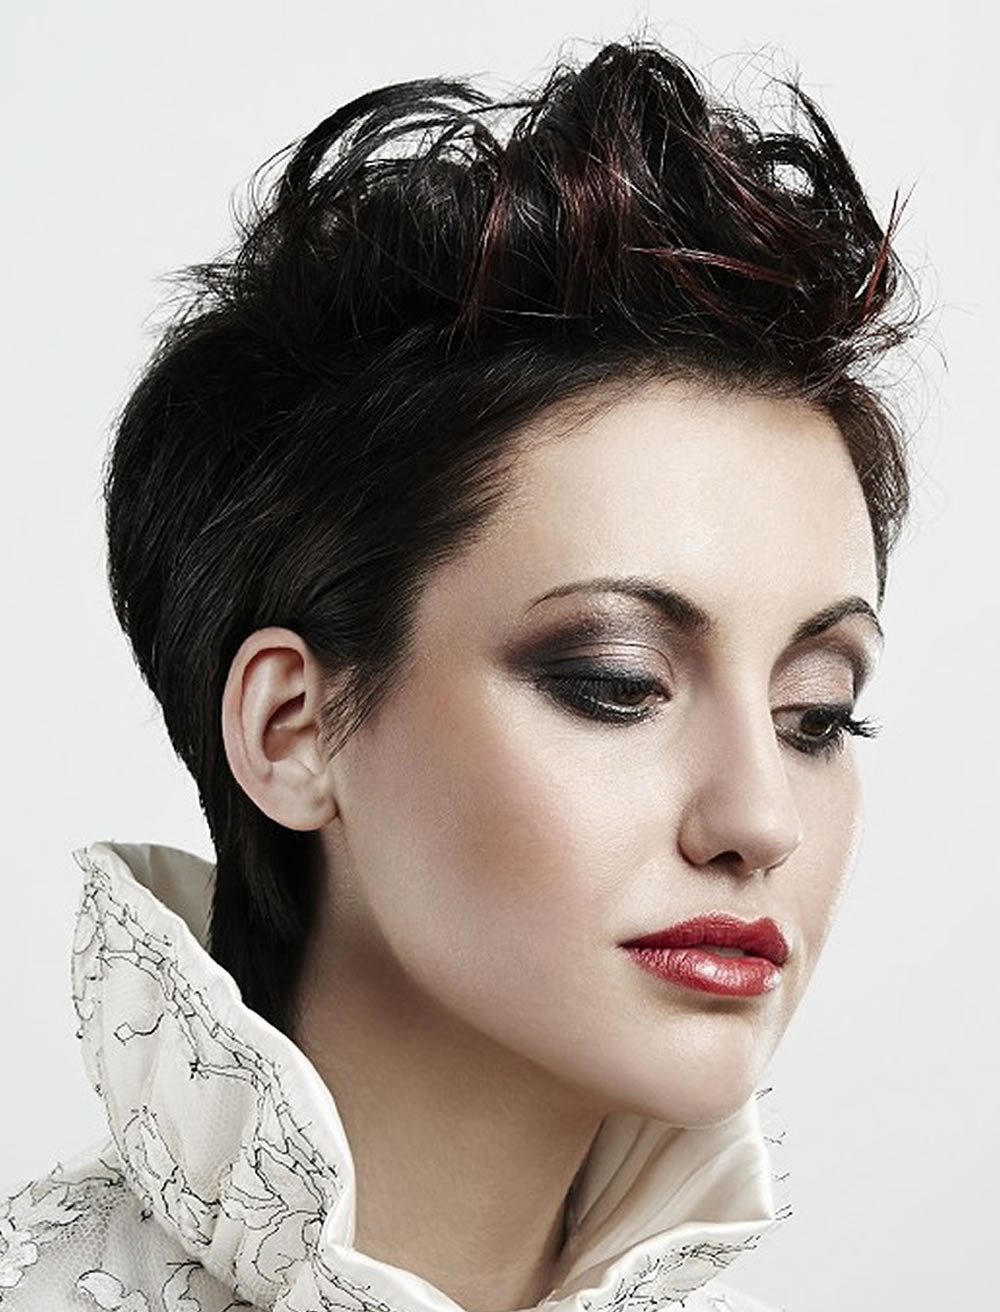 Best ideas about 2019 Female Haircuts . Save or Pin 2018 Short Haircut Trends and Hair Colors for Female Now.